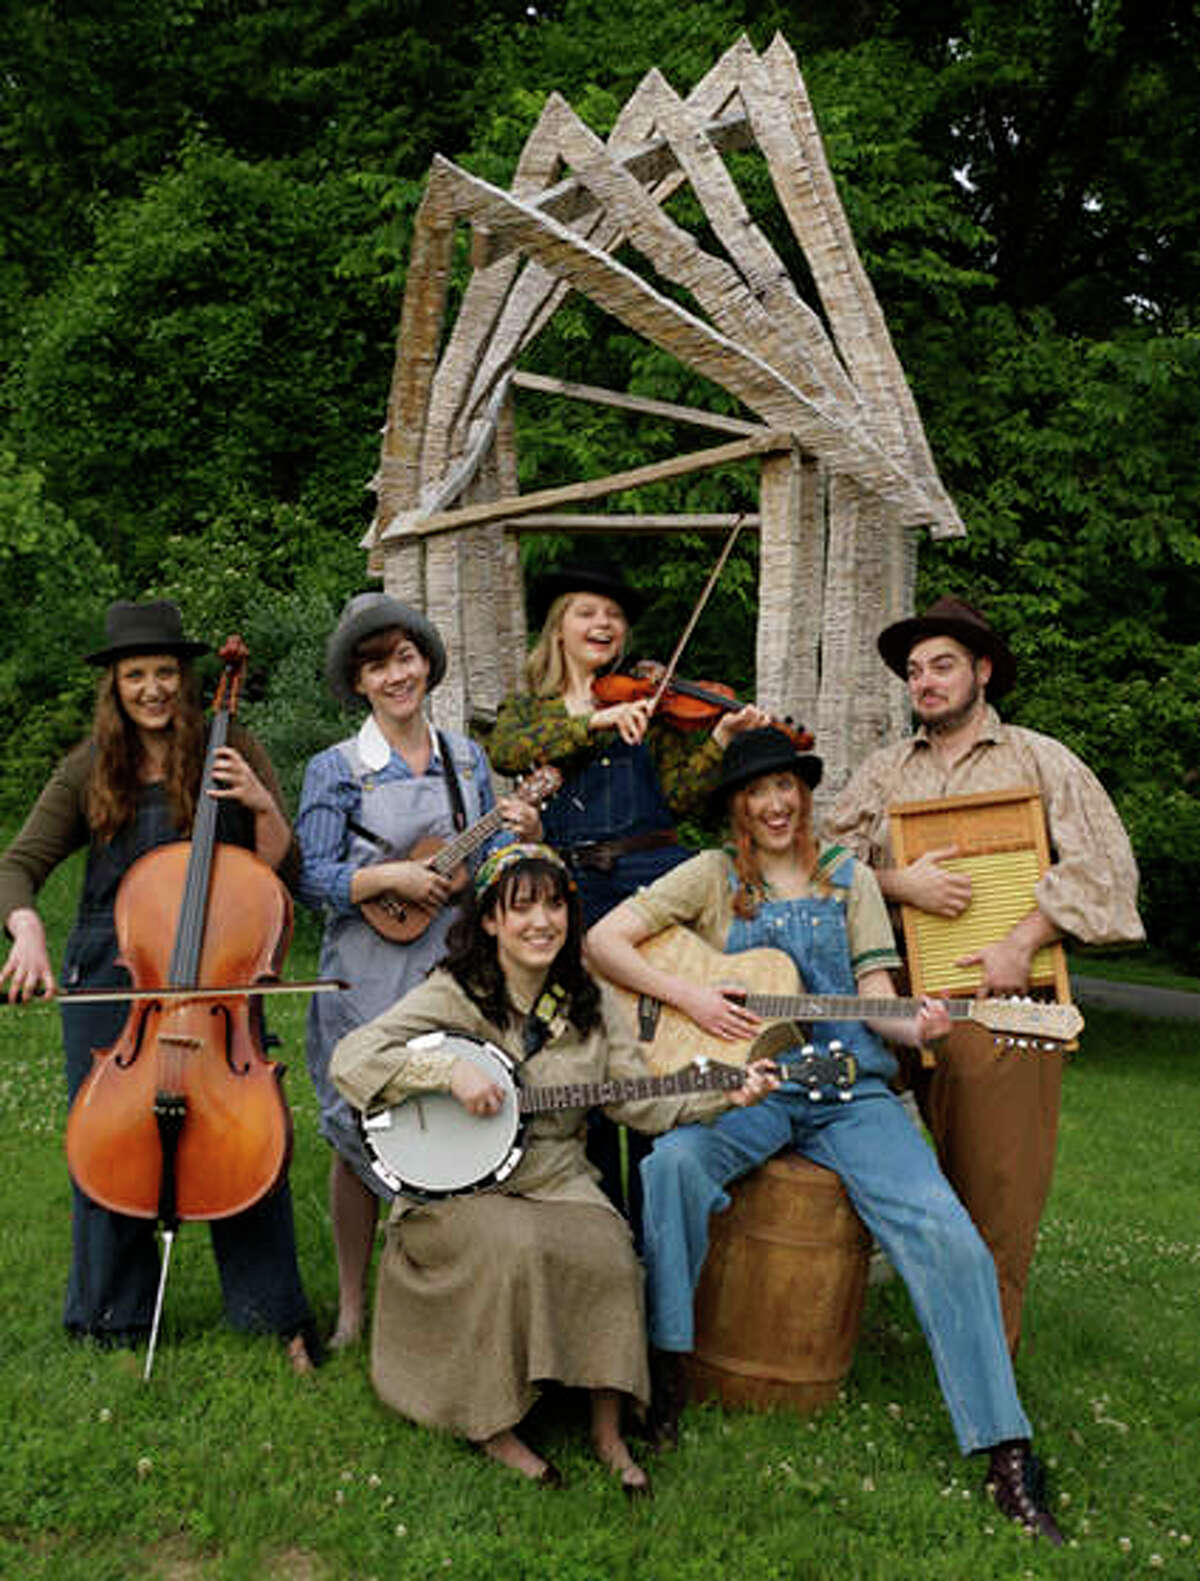 """SIUE Students performing in Shakespeare's """"As You Like It"""" include: (front row L-R) Summer Baer (banjo) and Lisa Hinrichs (guitar). (Back row L-R): Sara Naumann (cello), Ashley Bauman (ukulele), Sarah Lantsberger (fiddle) and David Zimmerman (washboard)."""